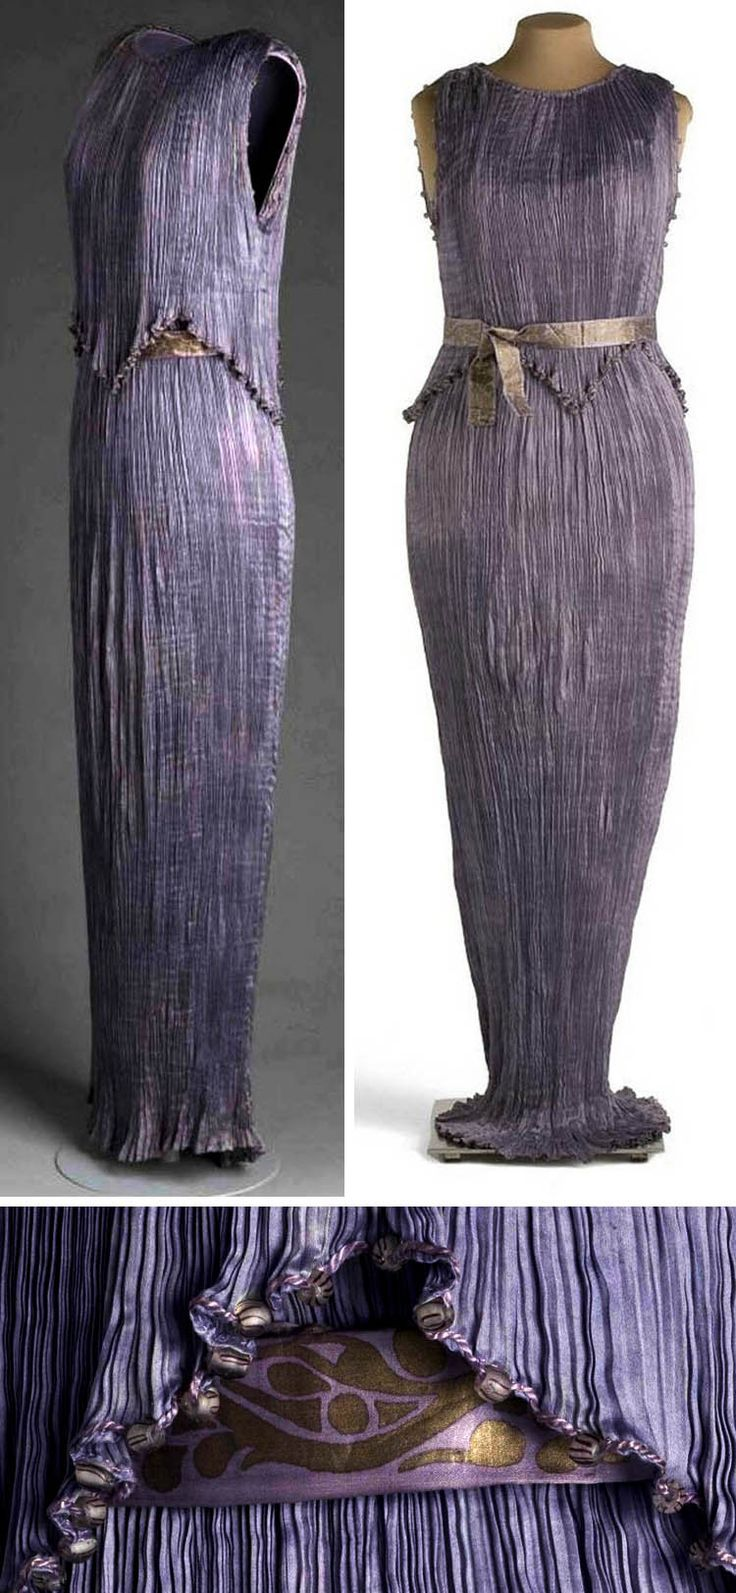 Delphos dress, Mariano Fortuny, 1909. Purple silk satin. Museo del Traje